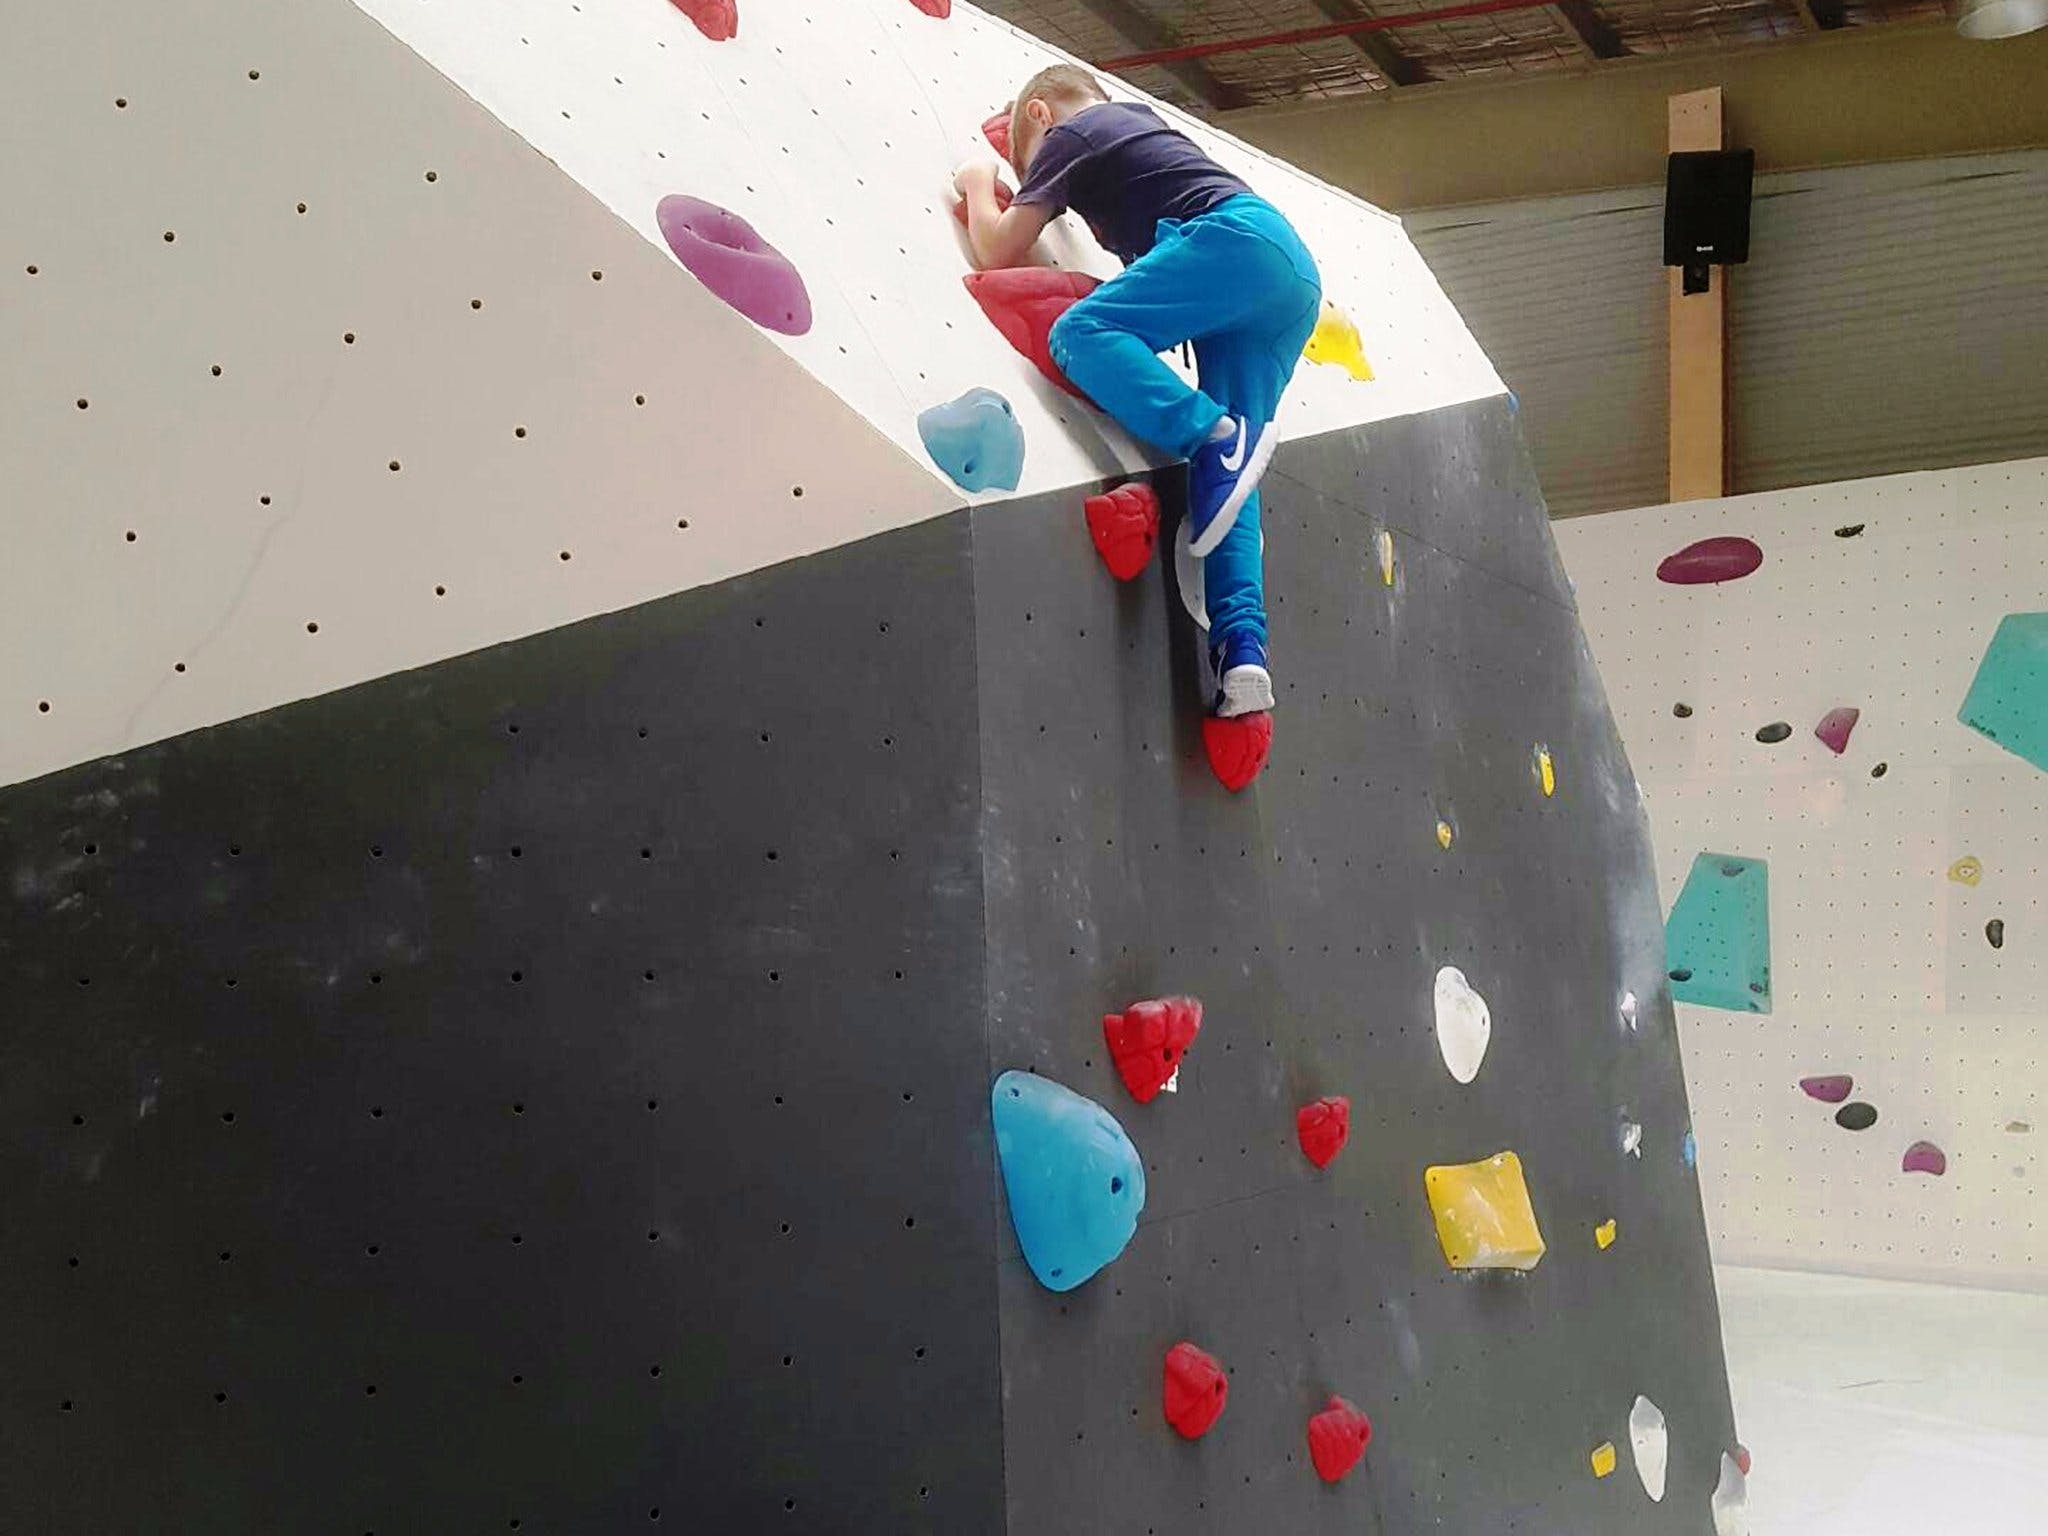 BlocHaus Bouldering - Accommodation in Bendigo